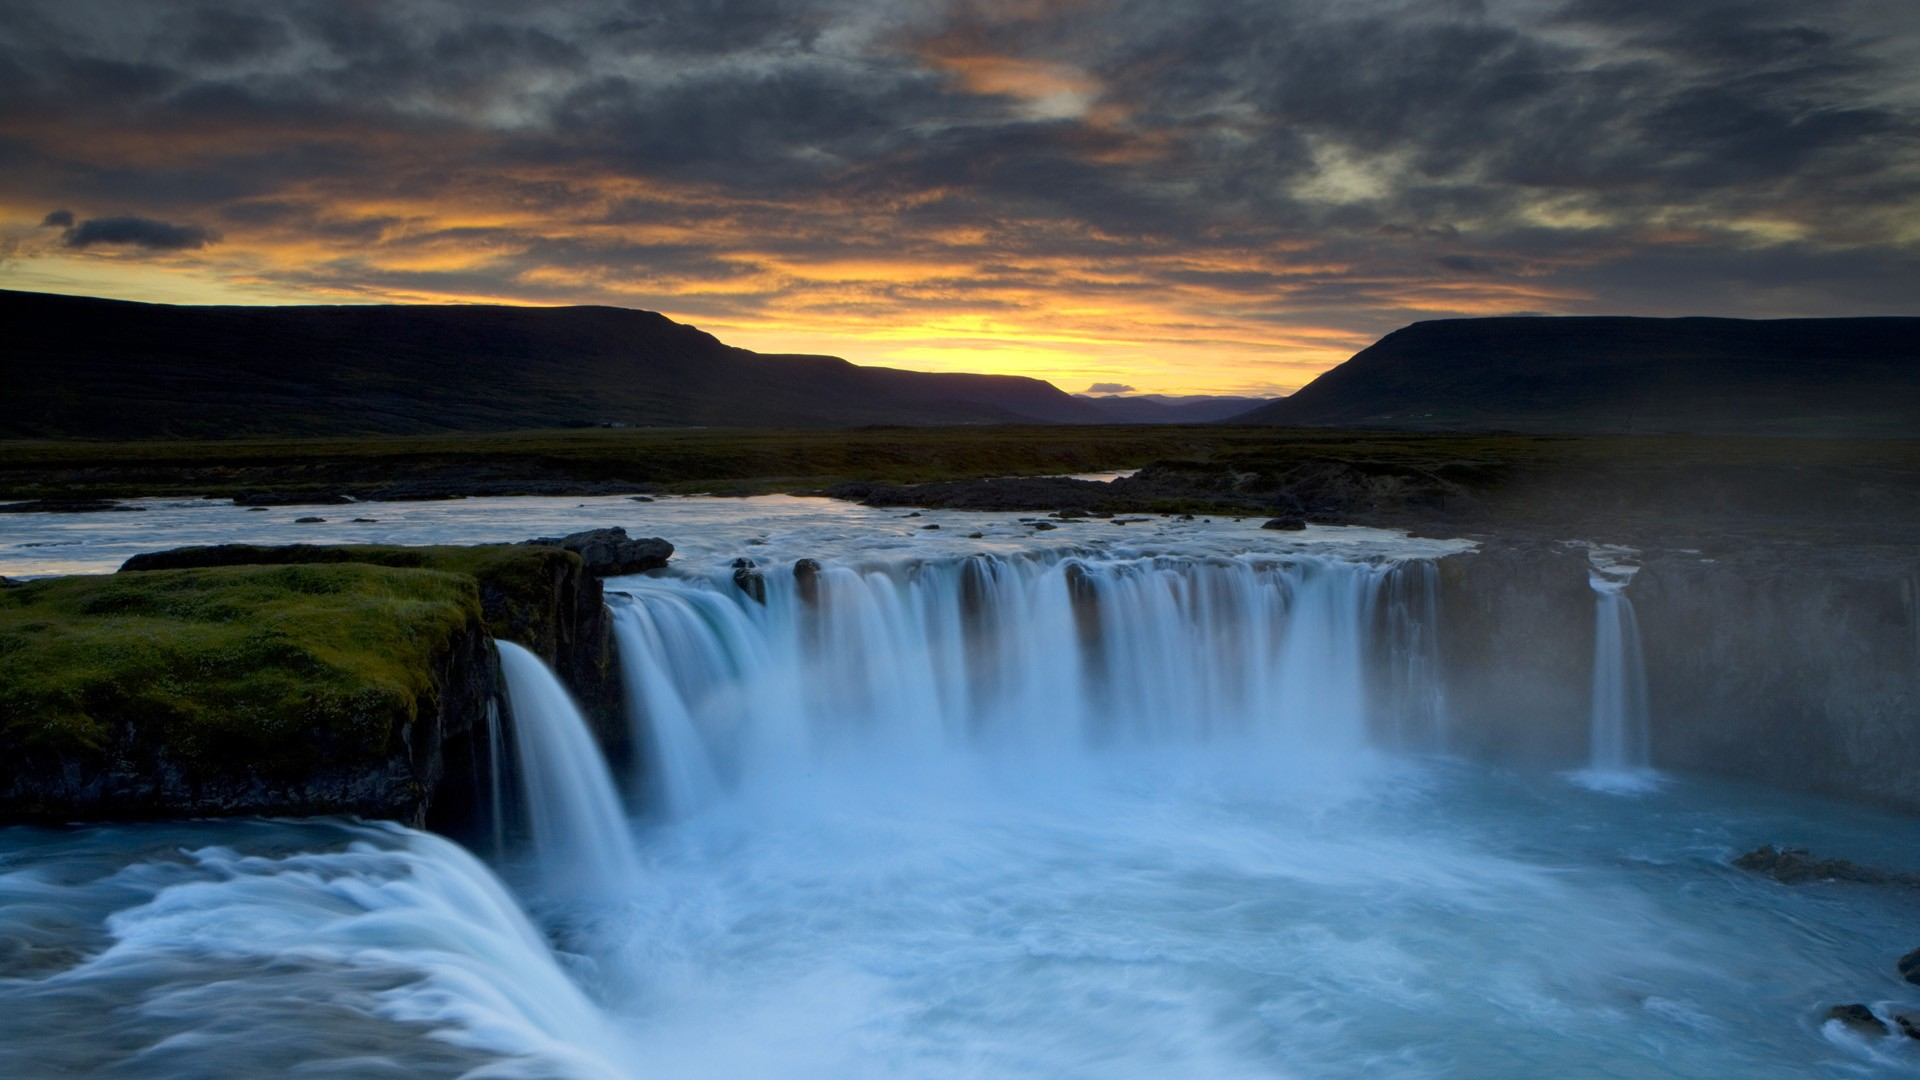 wallpaper godafoss iceland free - photo #9